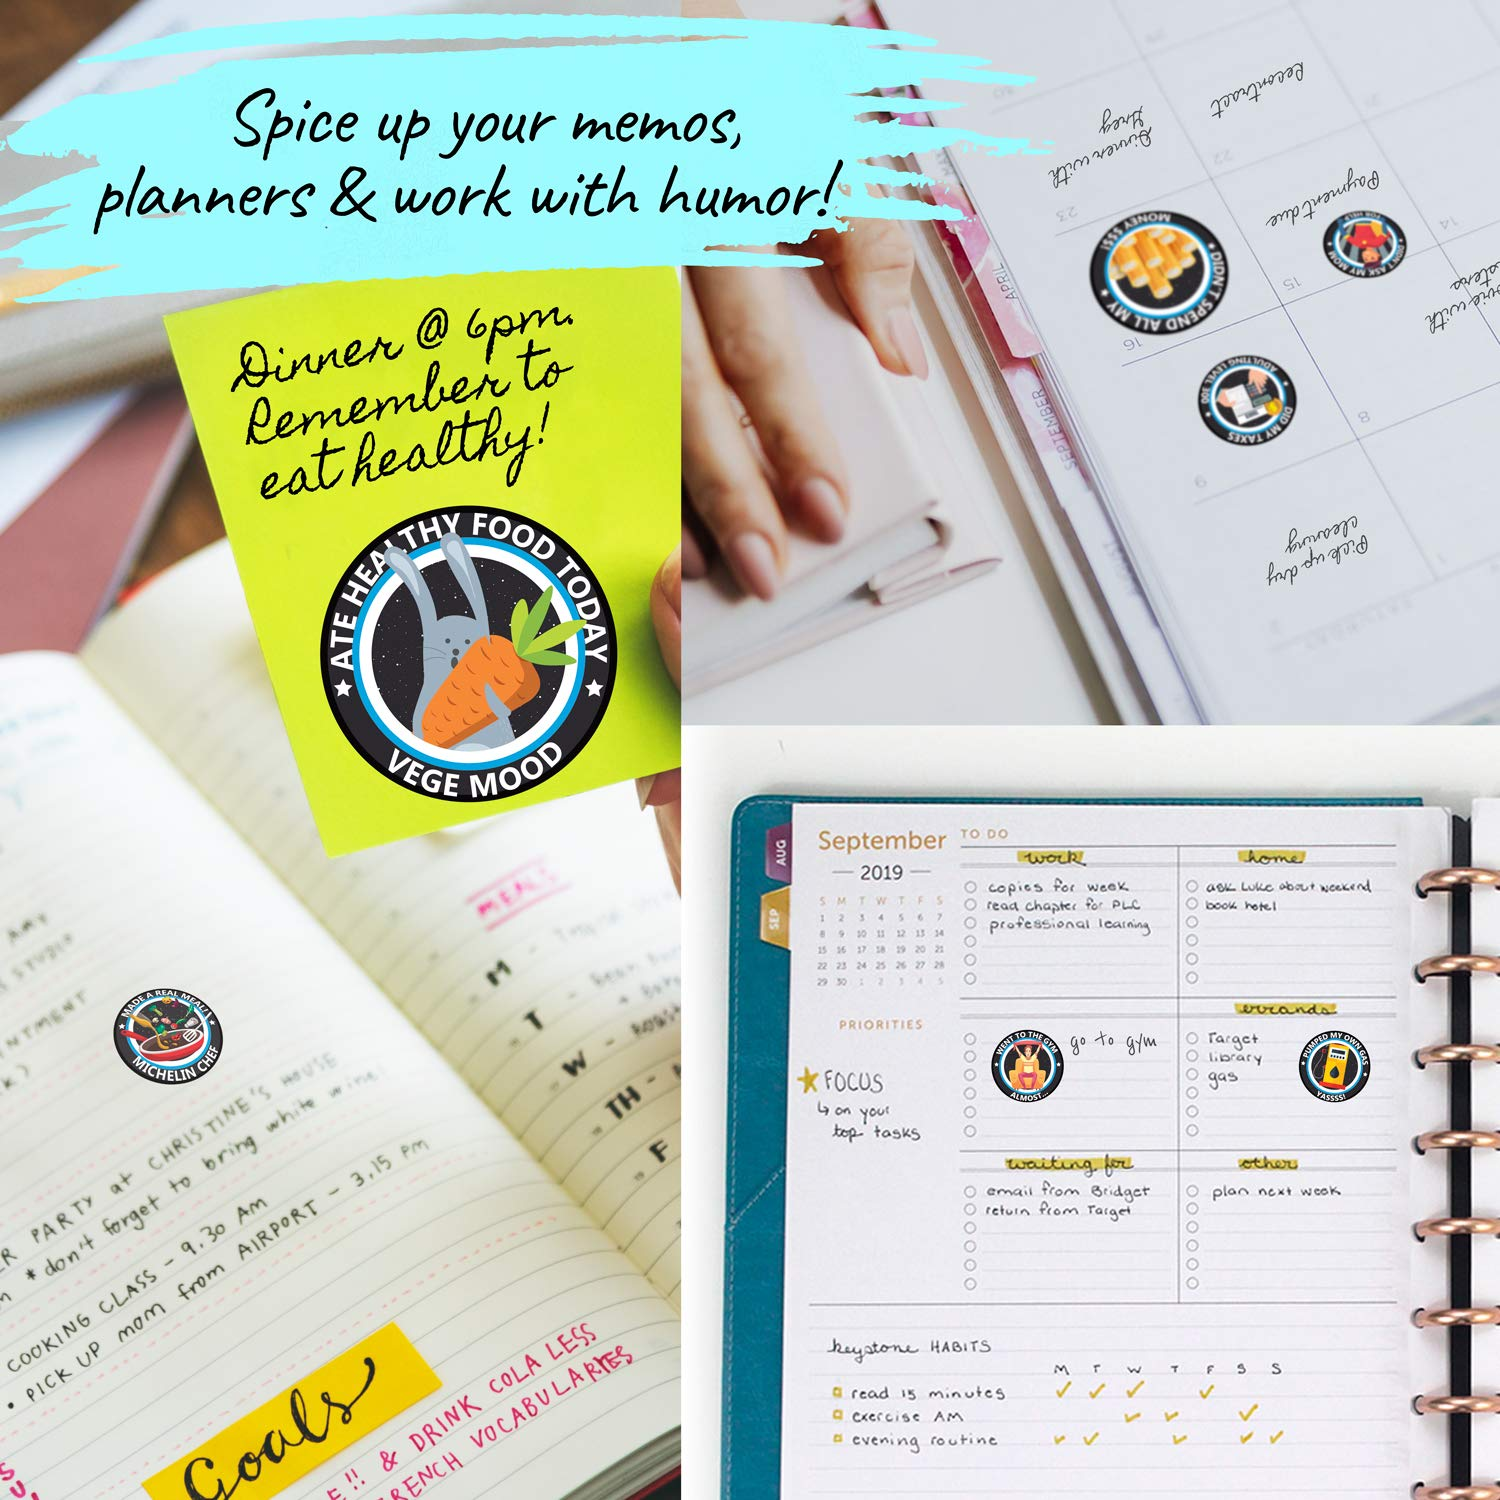 Howcrafts adulting stickers are great for memos, planners and organisers